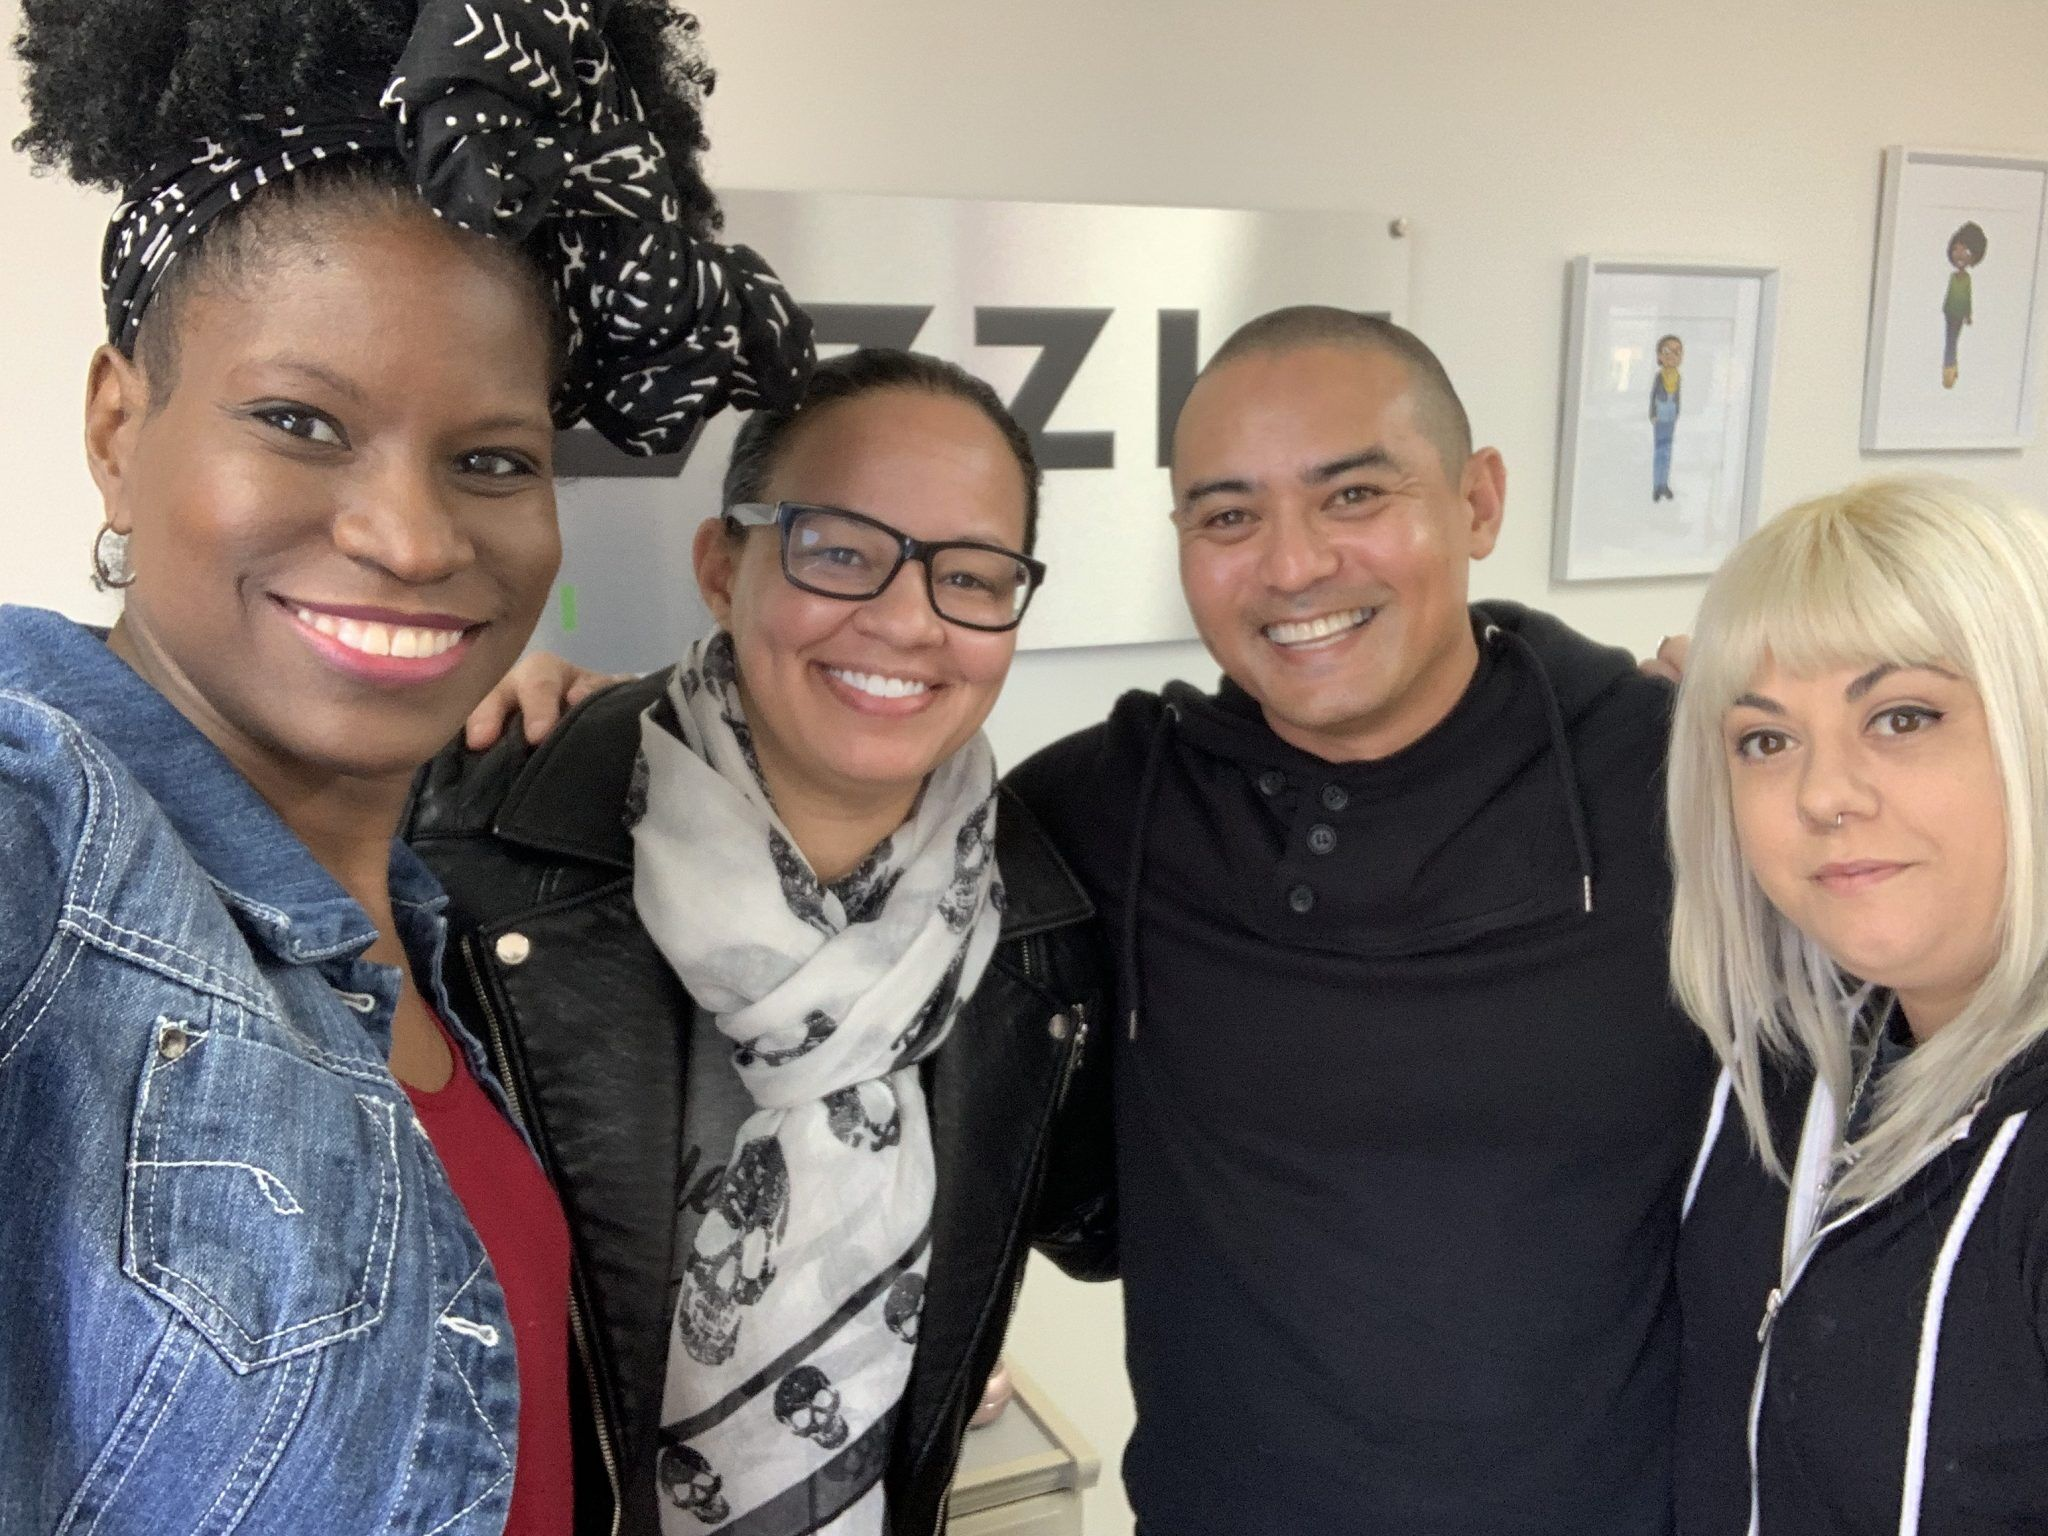 From left to right is Angel and Kristine of Puzzle Pieces Marketing nonprofit marketing agency, Patricio of Toothbrushery.com and SEO Specialist Jessica of Puzzle Pieces Marketing.